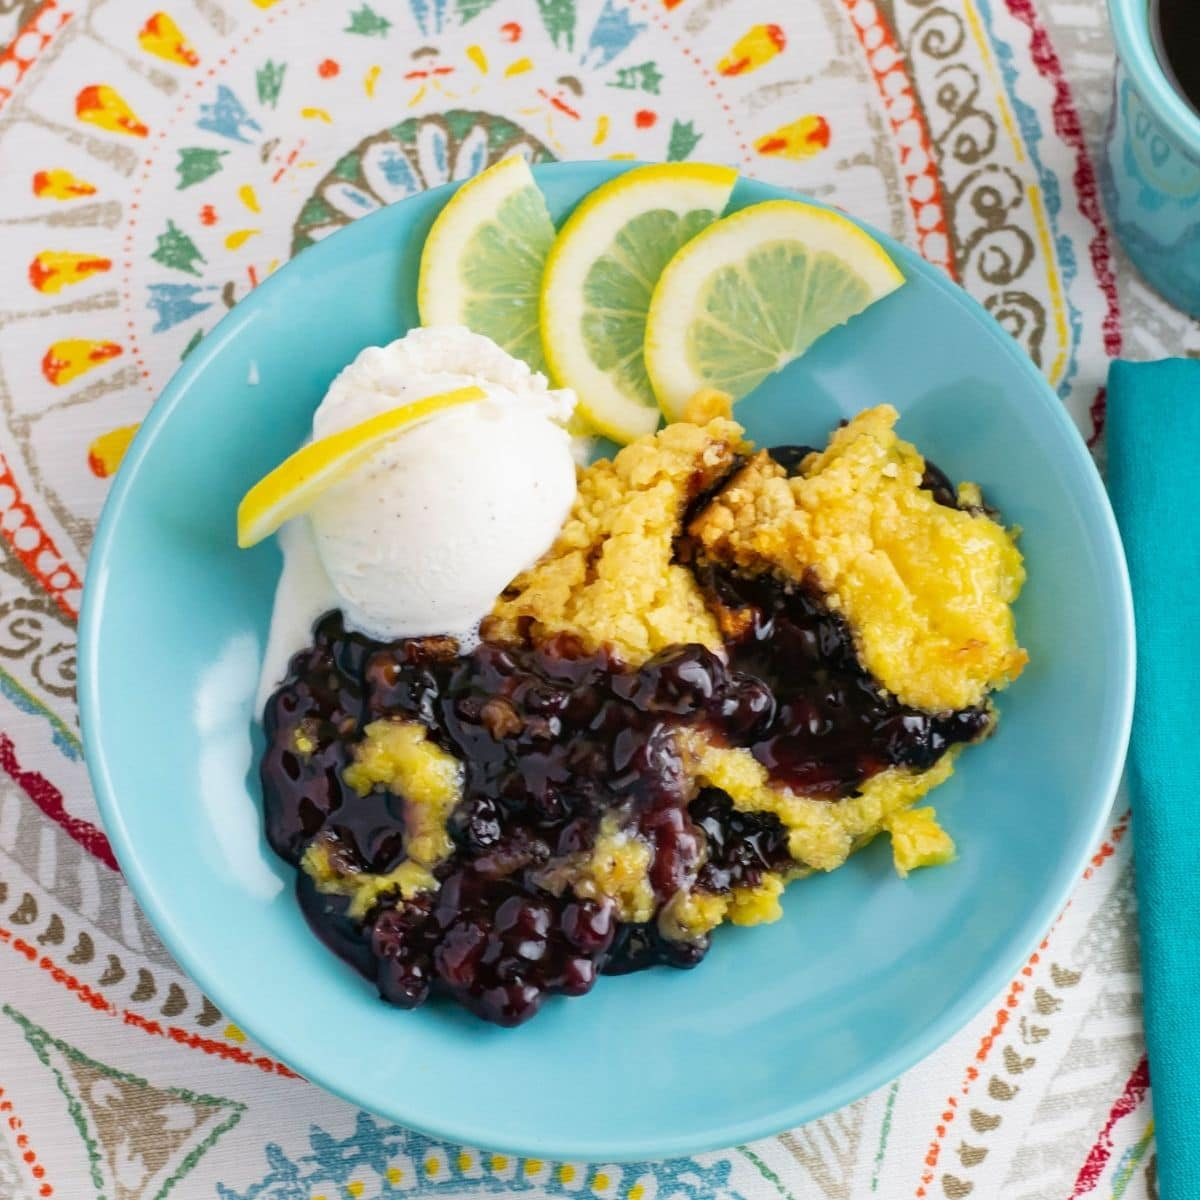 Blueberry Lemon Dump Cake with a scoop of vanilla ice cream in a bowl.